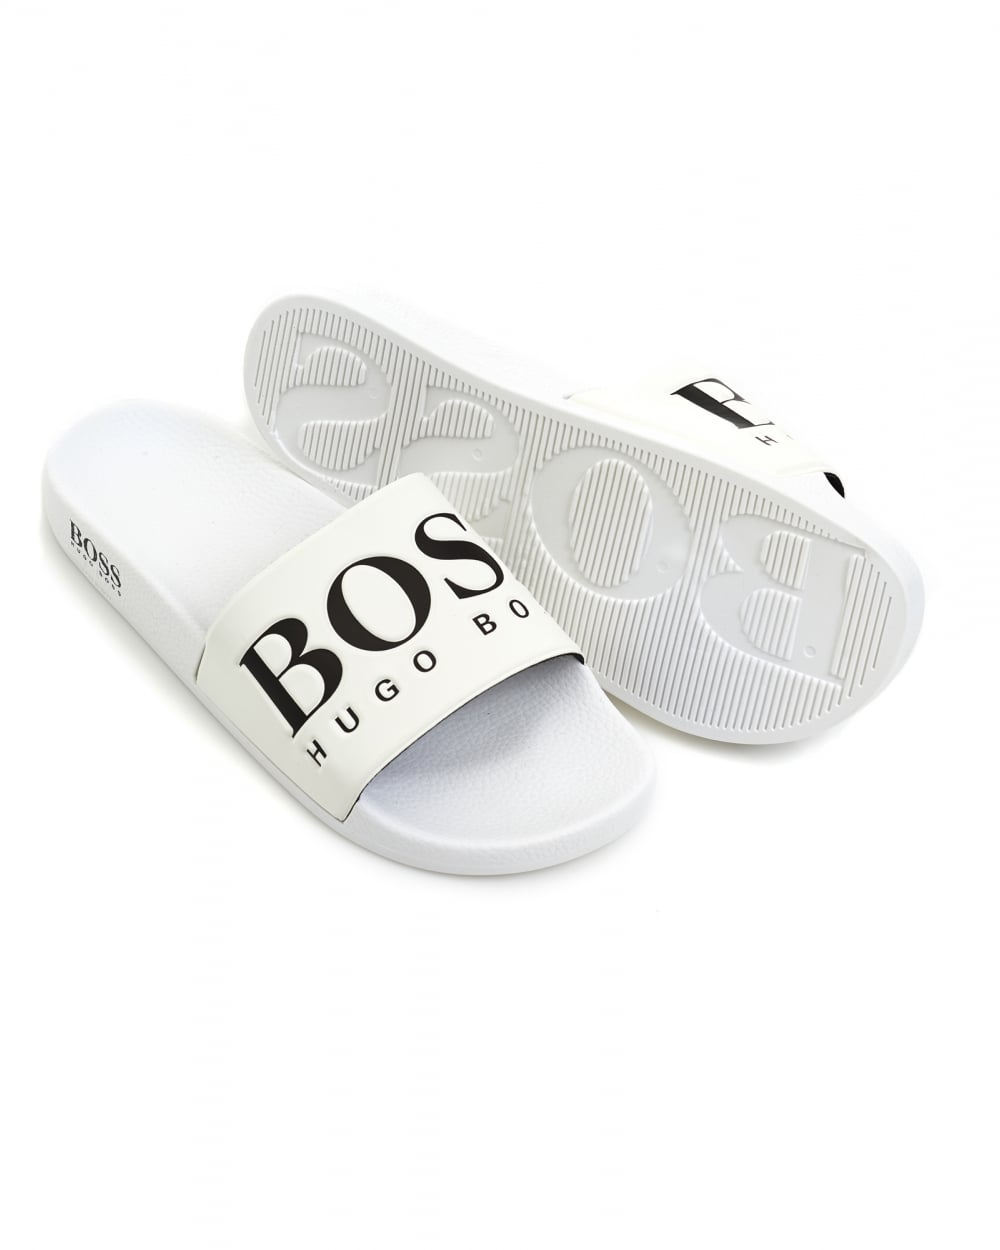 757f0845d93677 Hugo Boss Green Mens Solar Slide Sandals